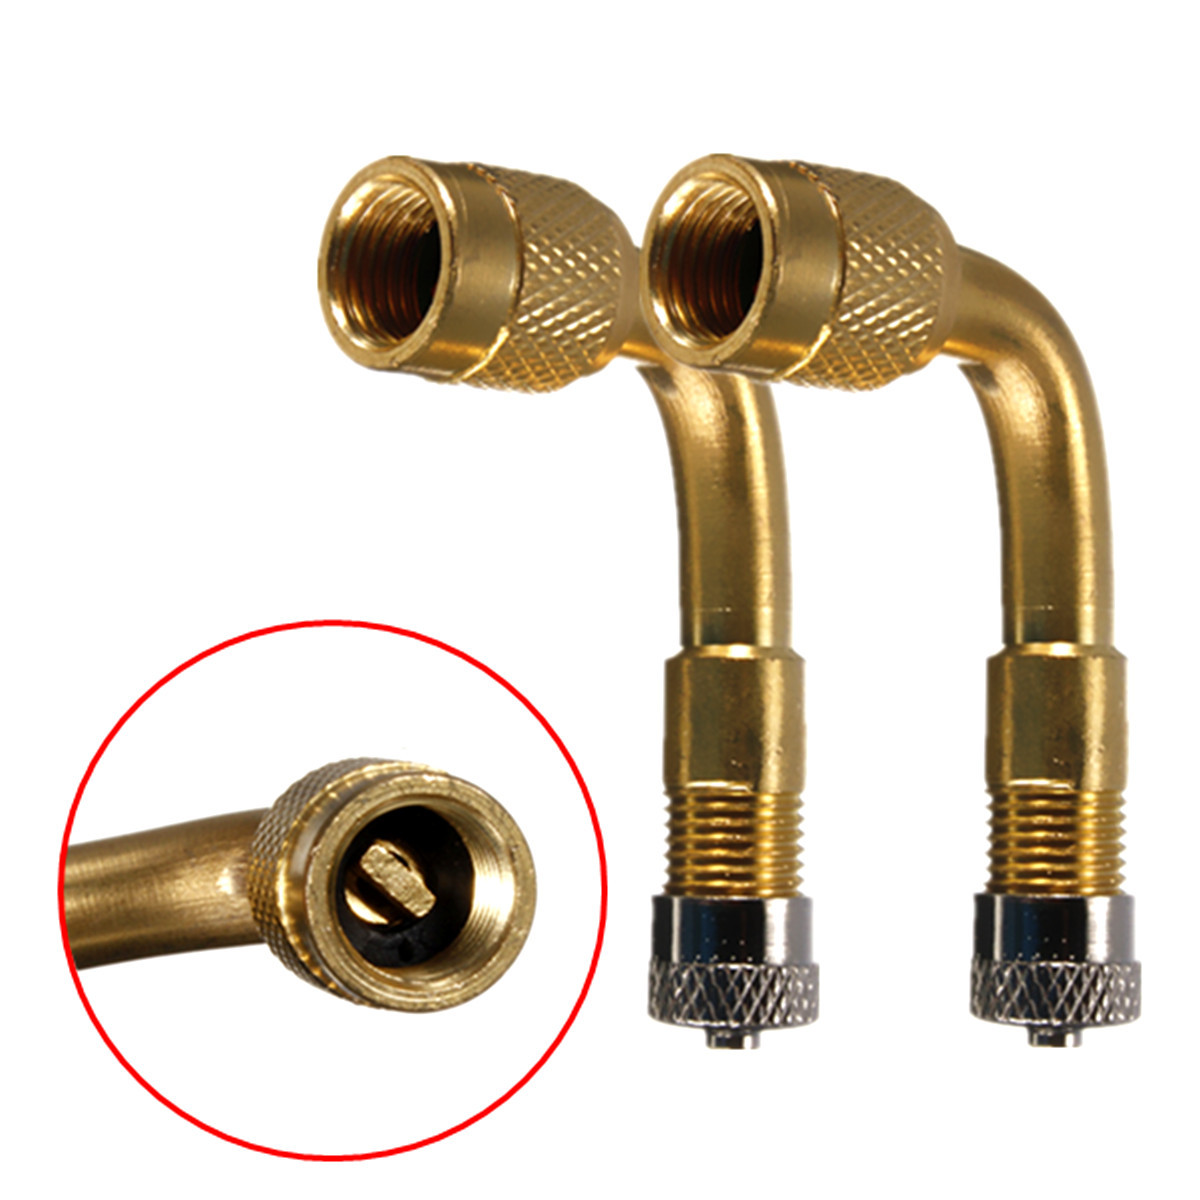 1 Pcs Air Tyre Valve Tire Valve Stem Extenders Extension Adapter 90 Degree Angle Brass For Car Truck Motorcycle